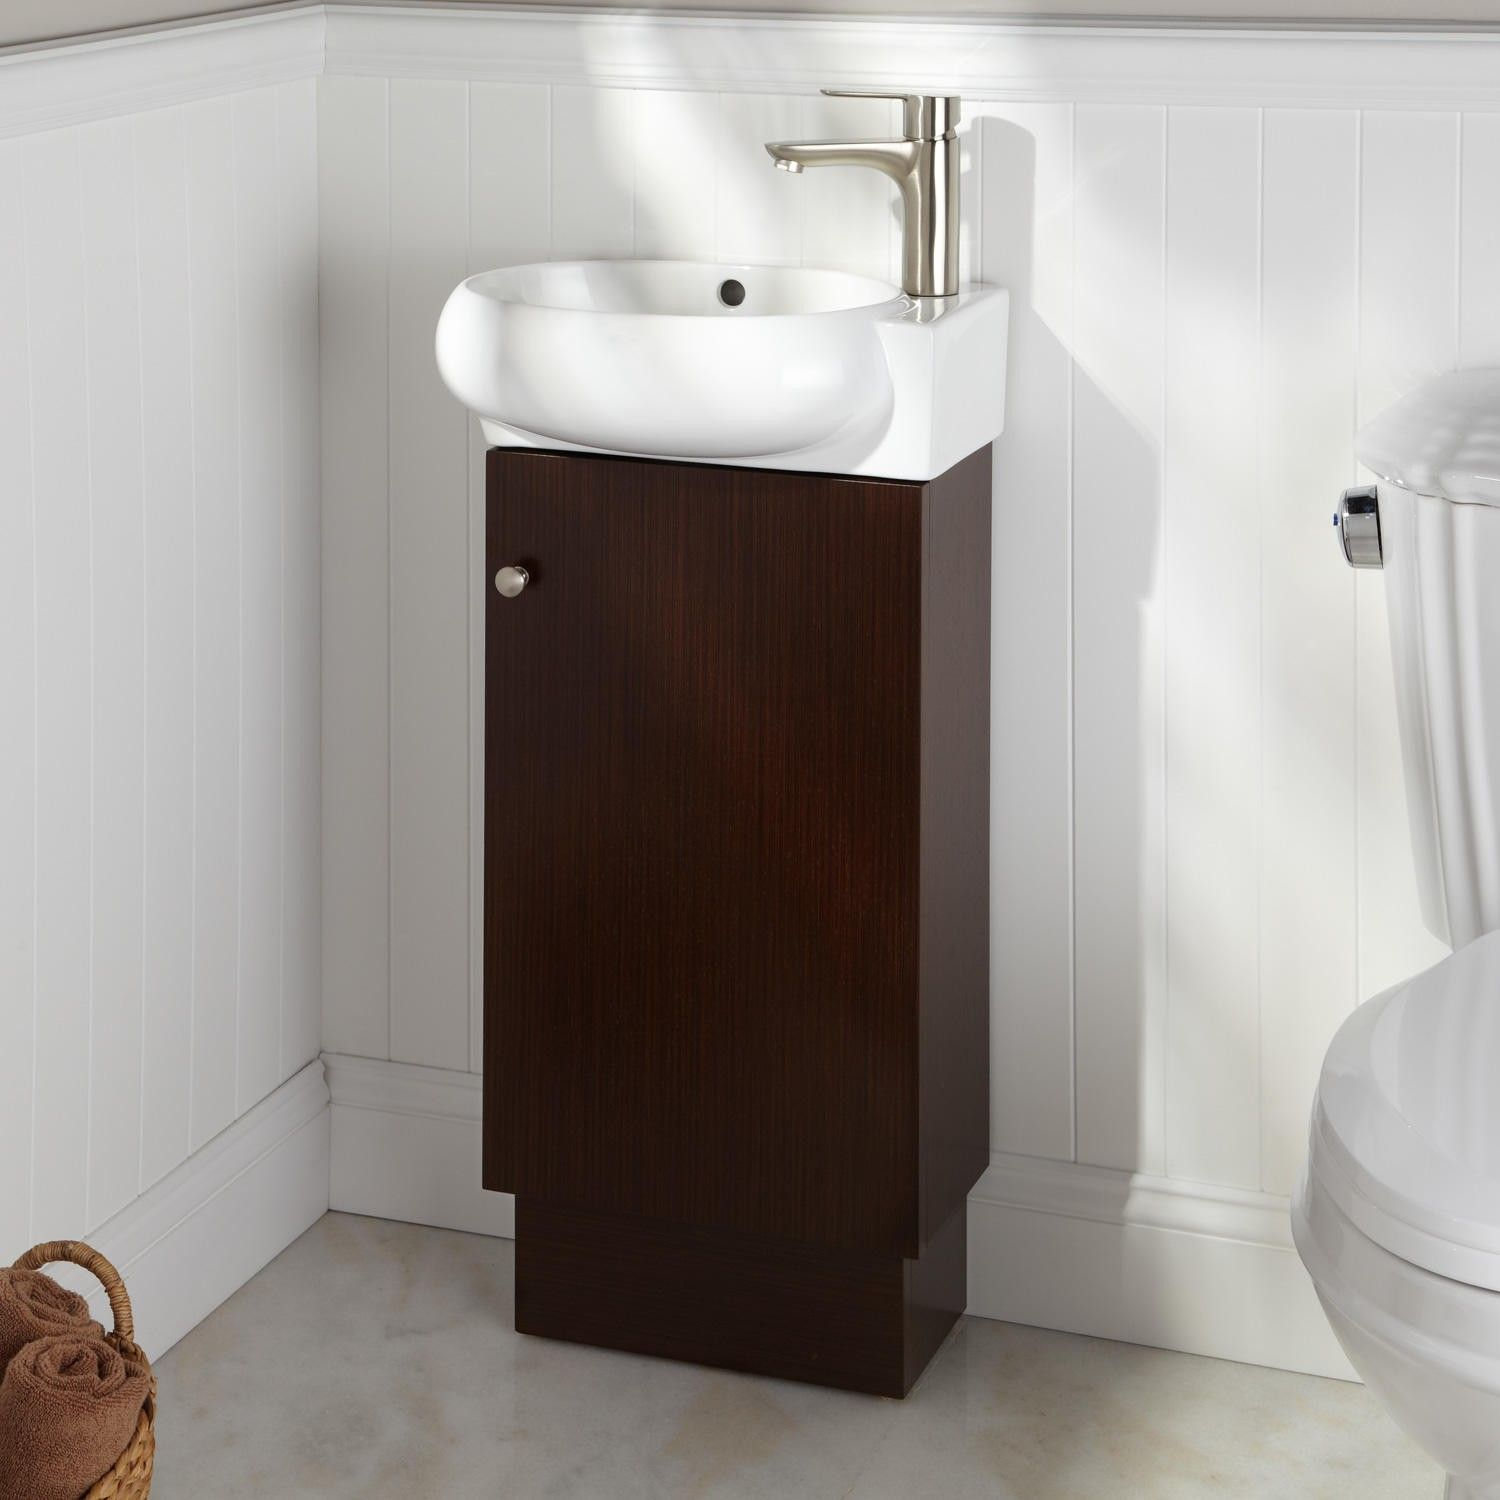 17 Findlay Vanity Wenge Bathroom Vanities Bathroom Bathroom Vanity Small Bathroom Vanities Vanity Design